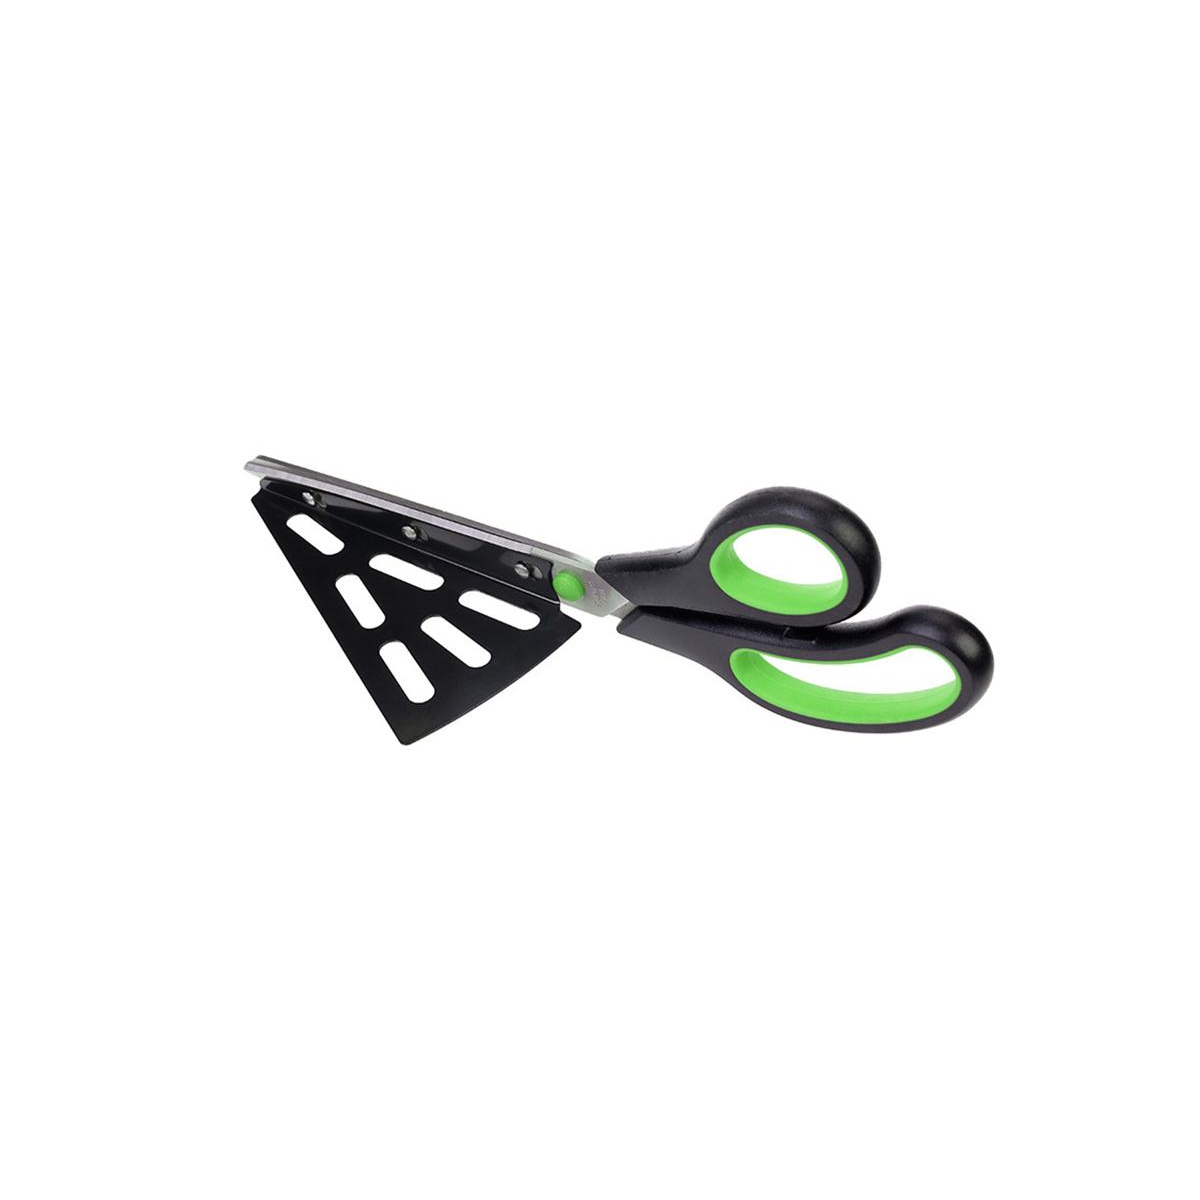 IAG-Pizza-Scissors-Cutter-Spatula-2-1200×1200